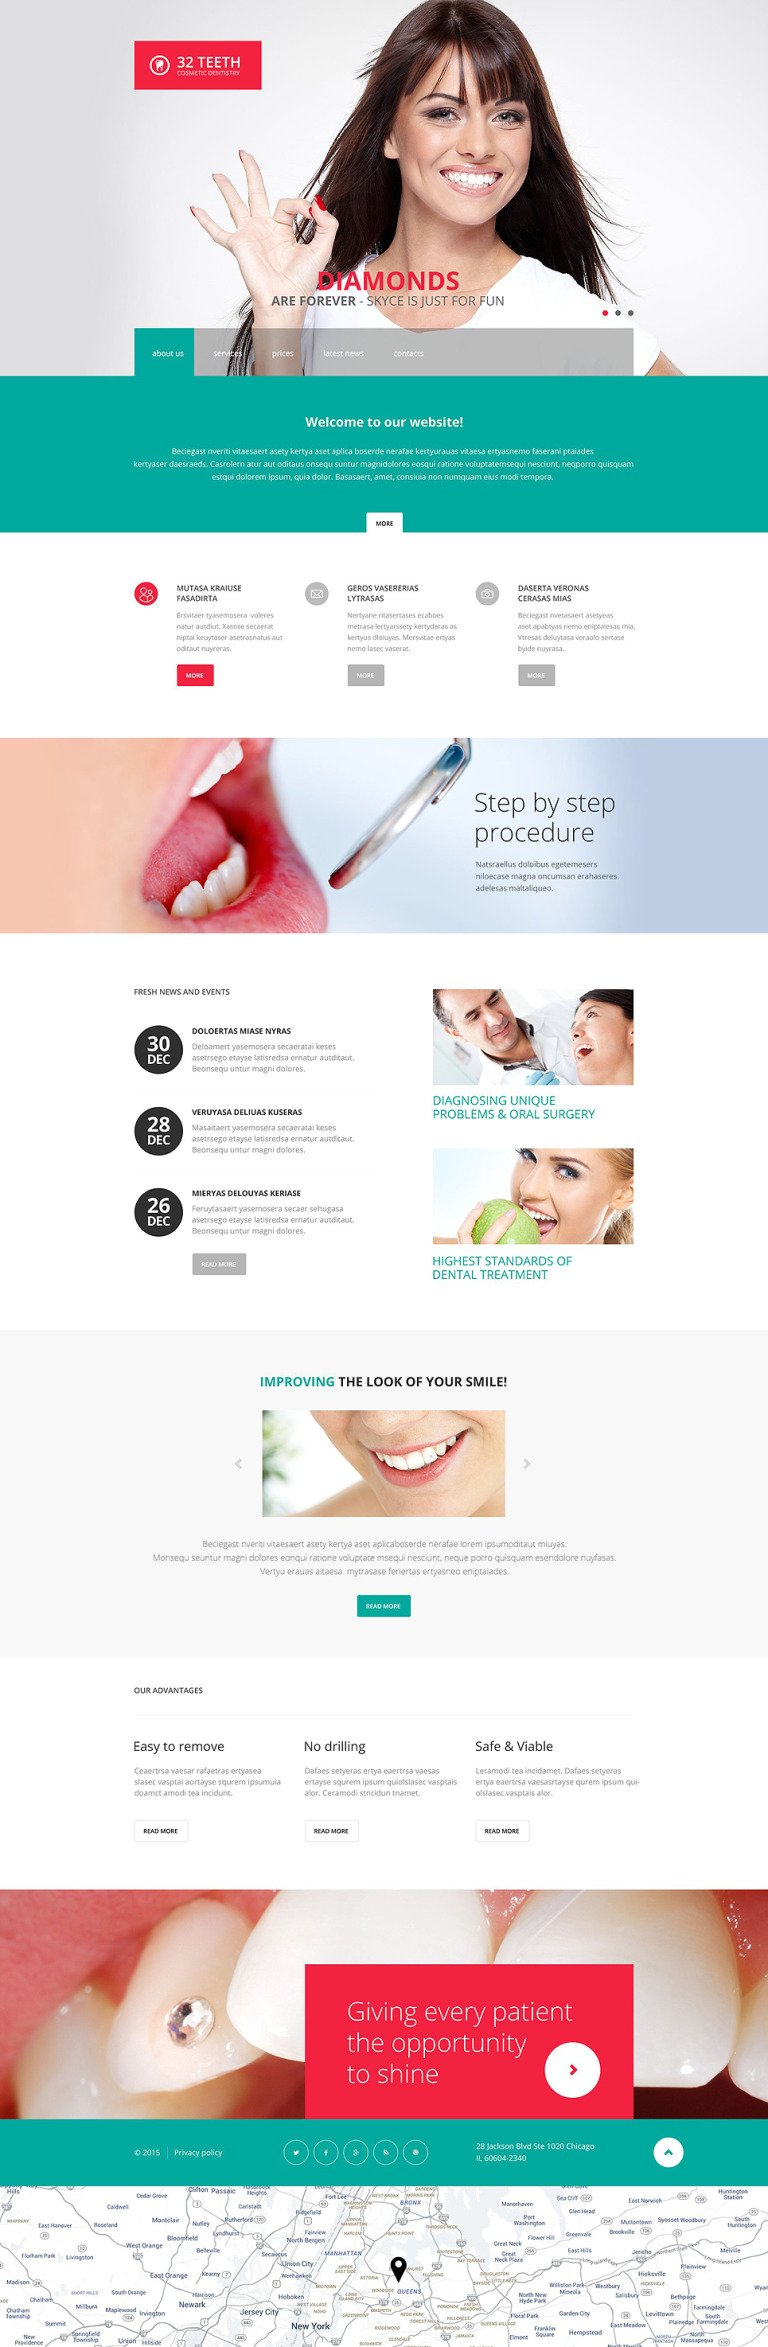 Skyce Dentistry Website Template New Screenshots BIG